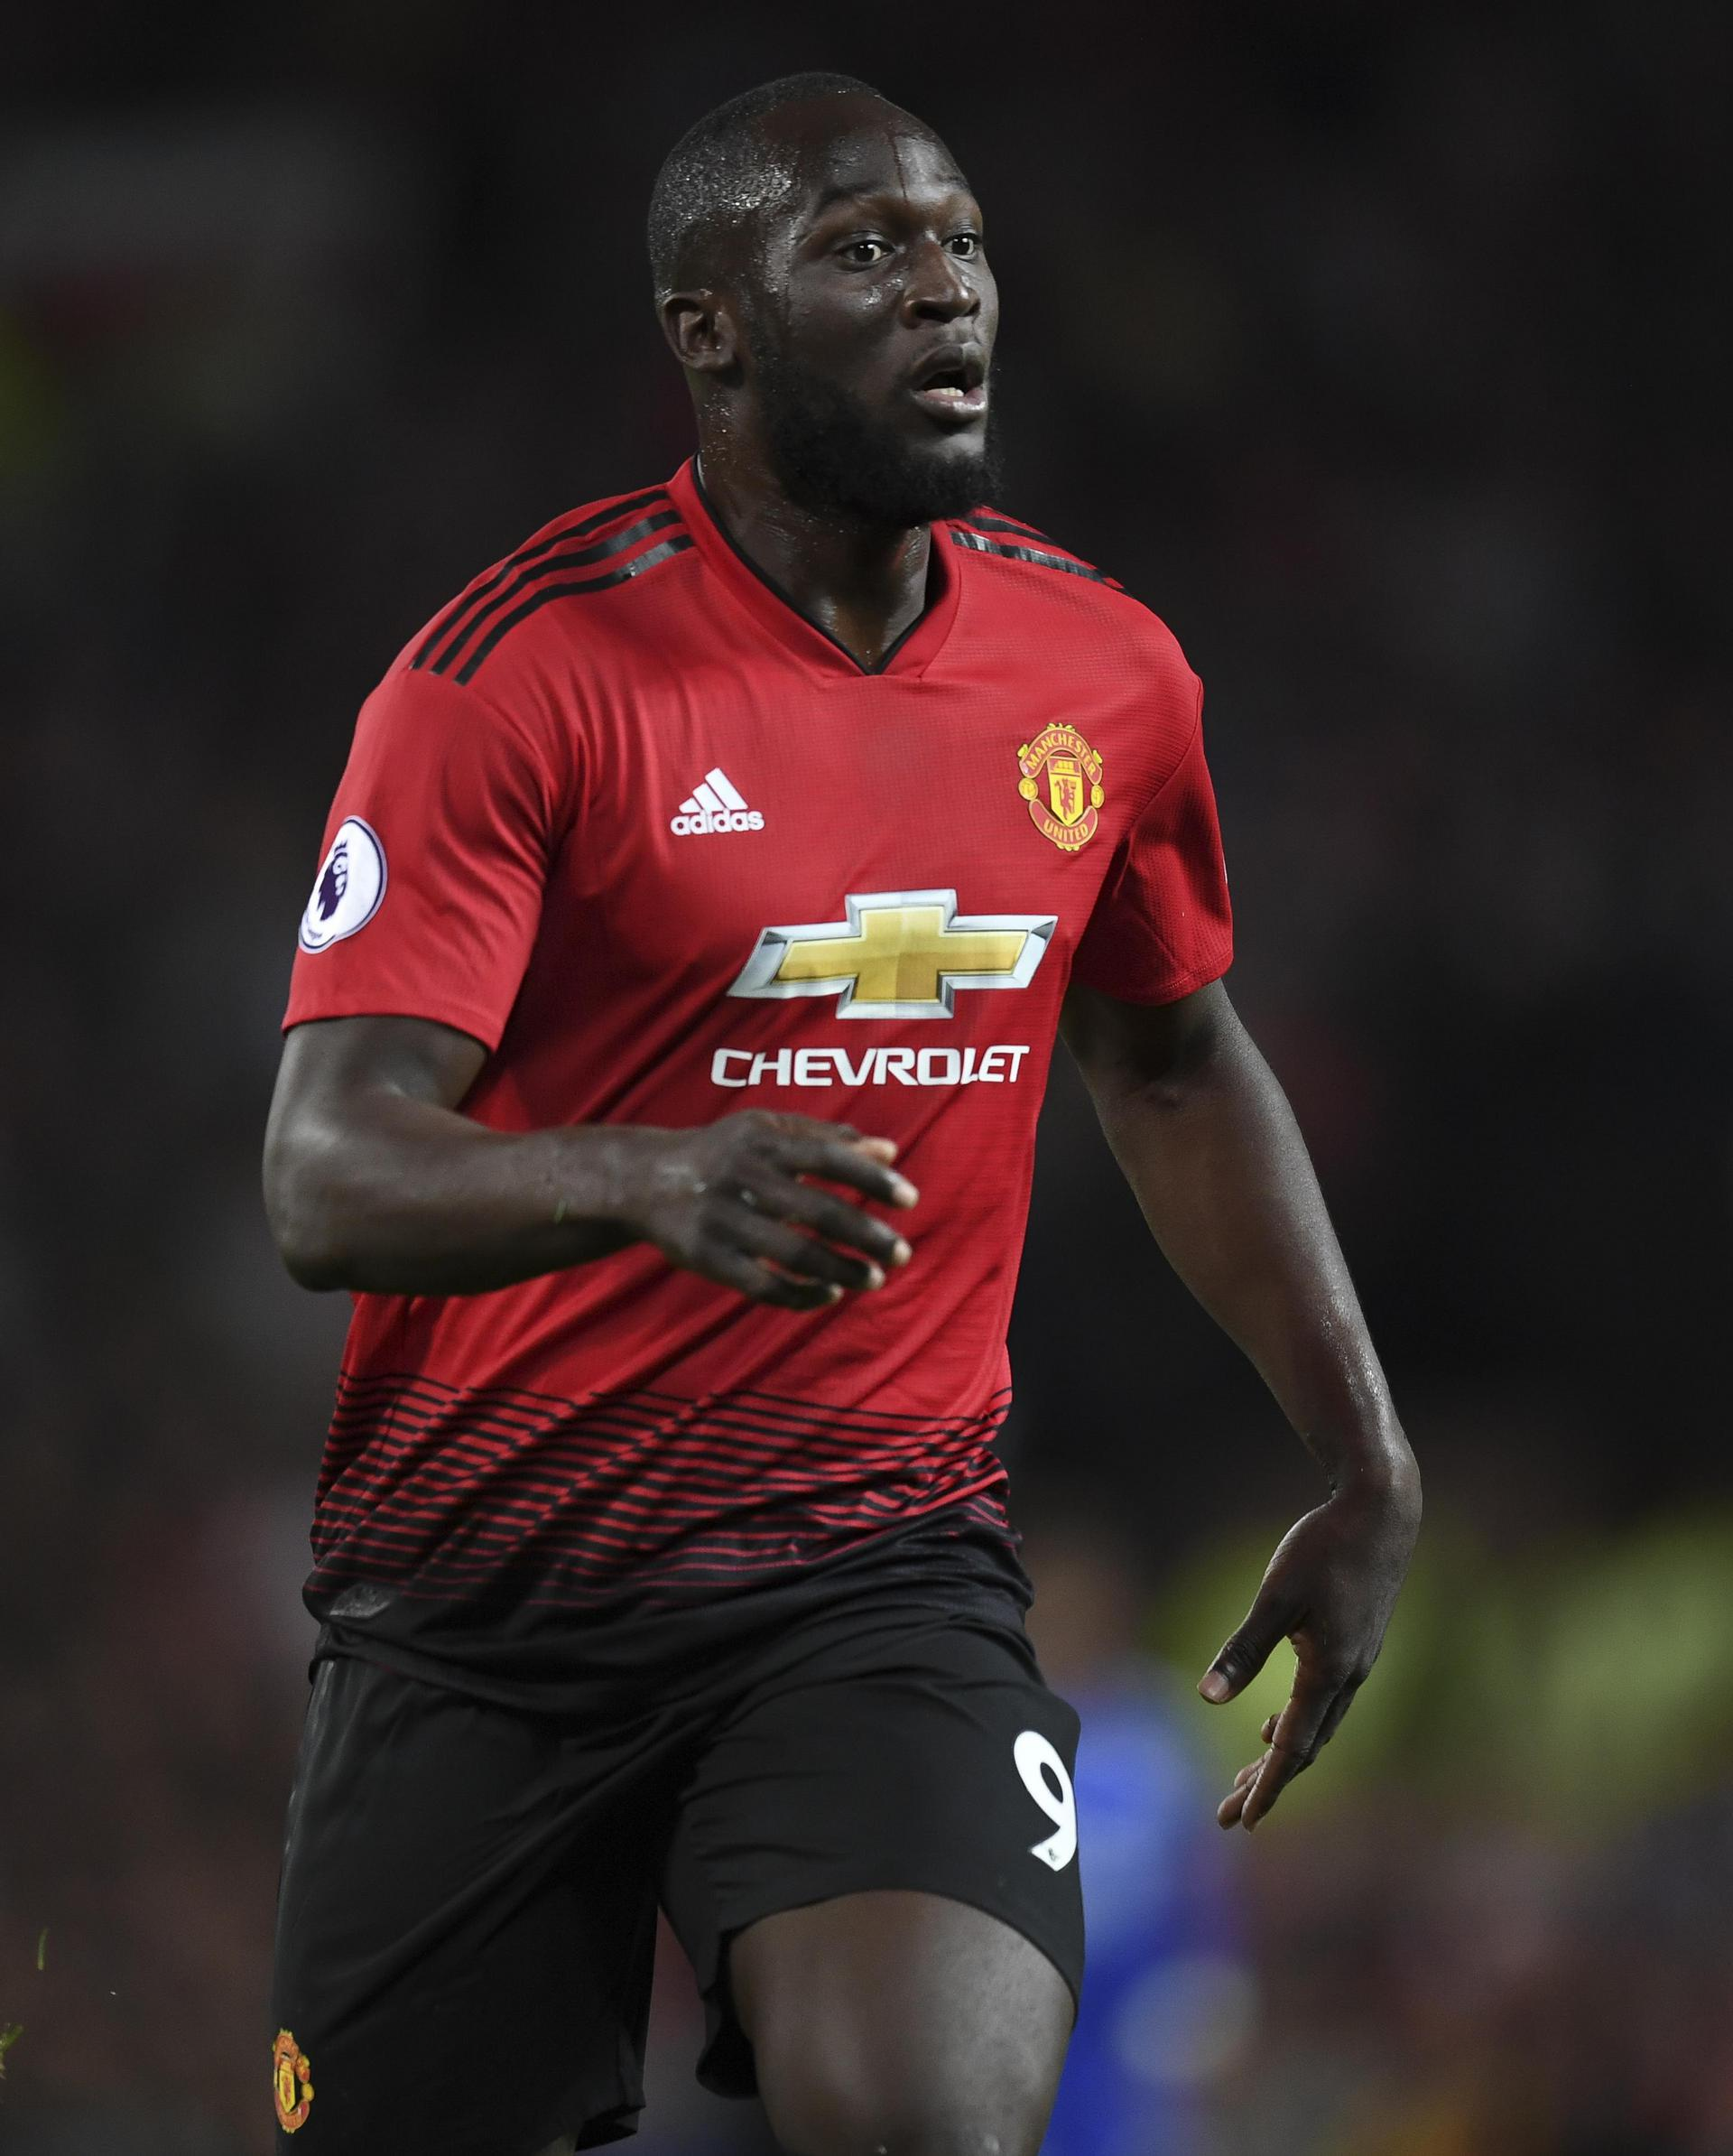 Romelu Lukaku starts on the bench against his old club Everton